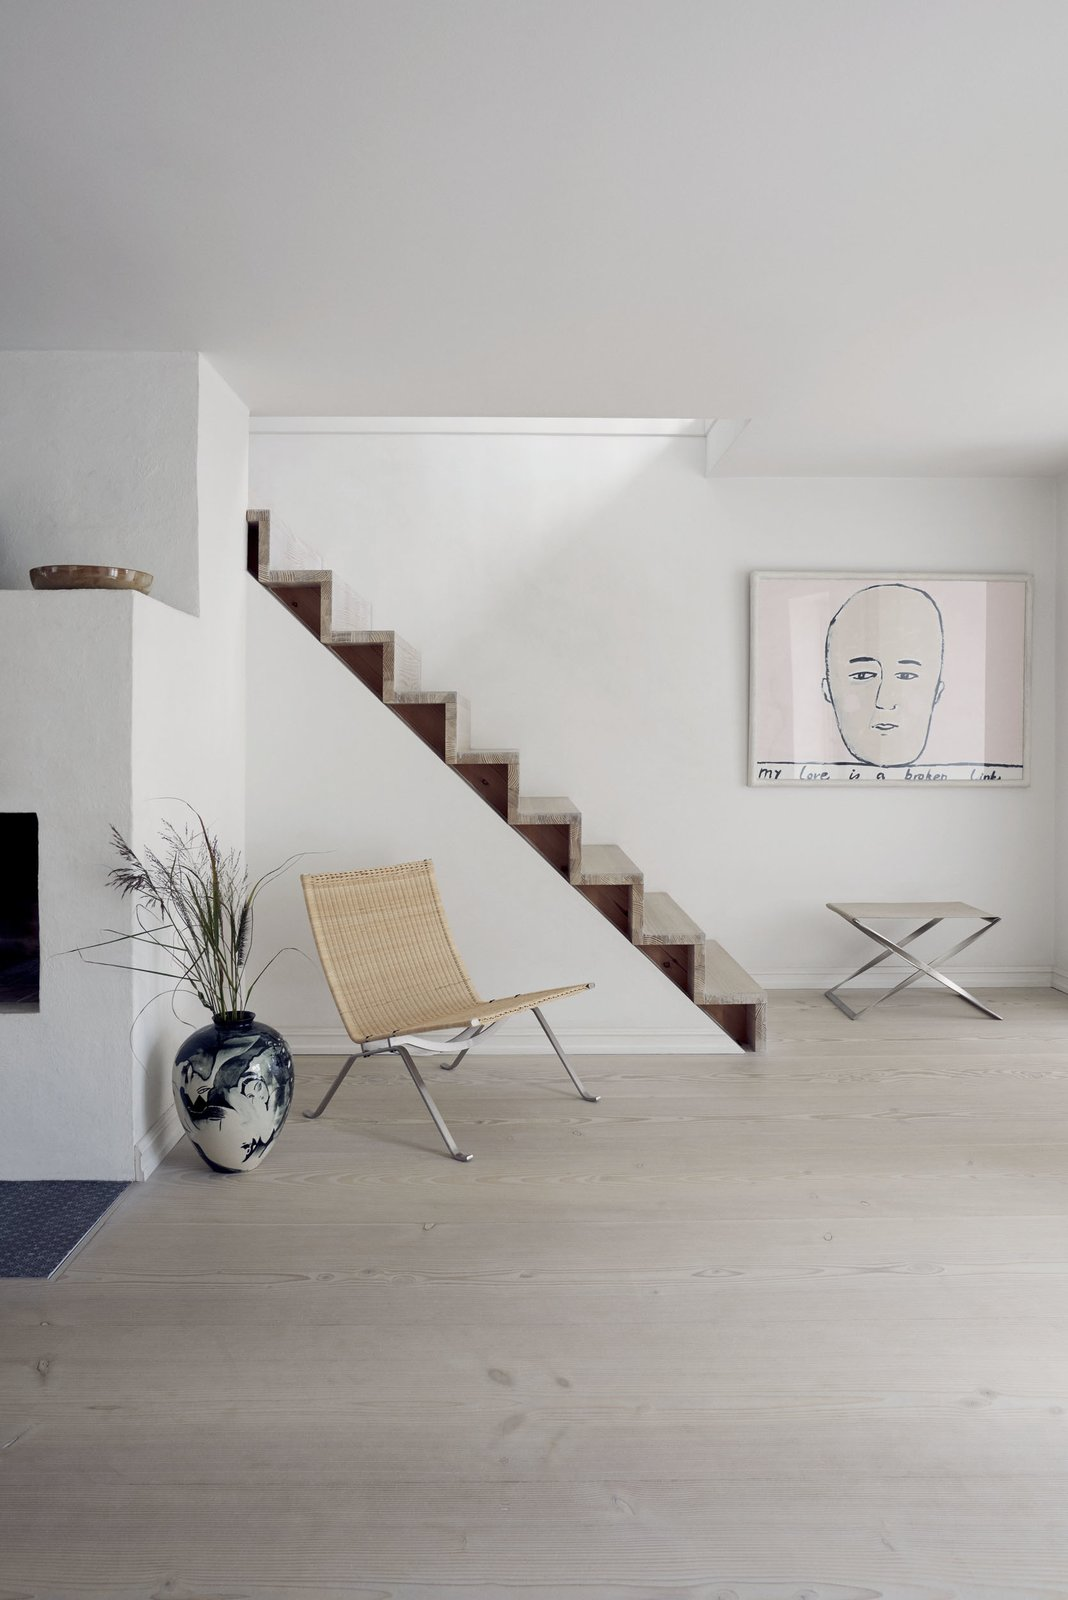 The wicker PK22 lounge chair and a foldable PK91 stool made from steel and canvas sit by the staircase on the first floor.  Photo 8 of 15 in A Recent Trip Leaves Us Dwelling on Denmark